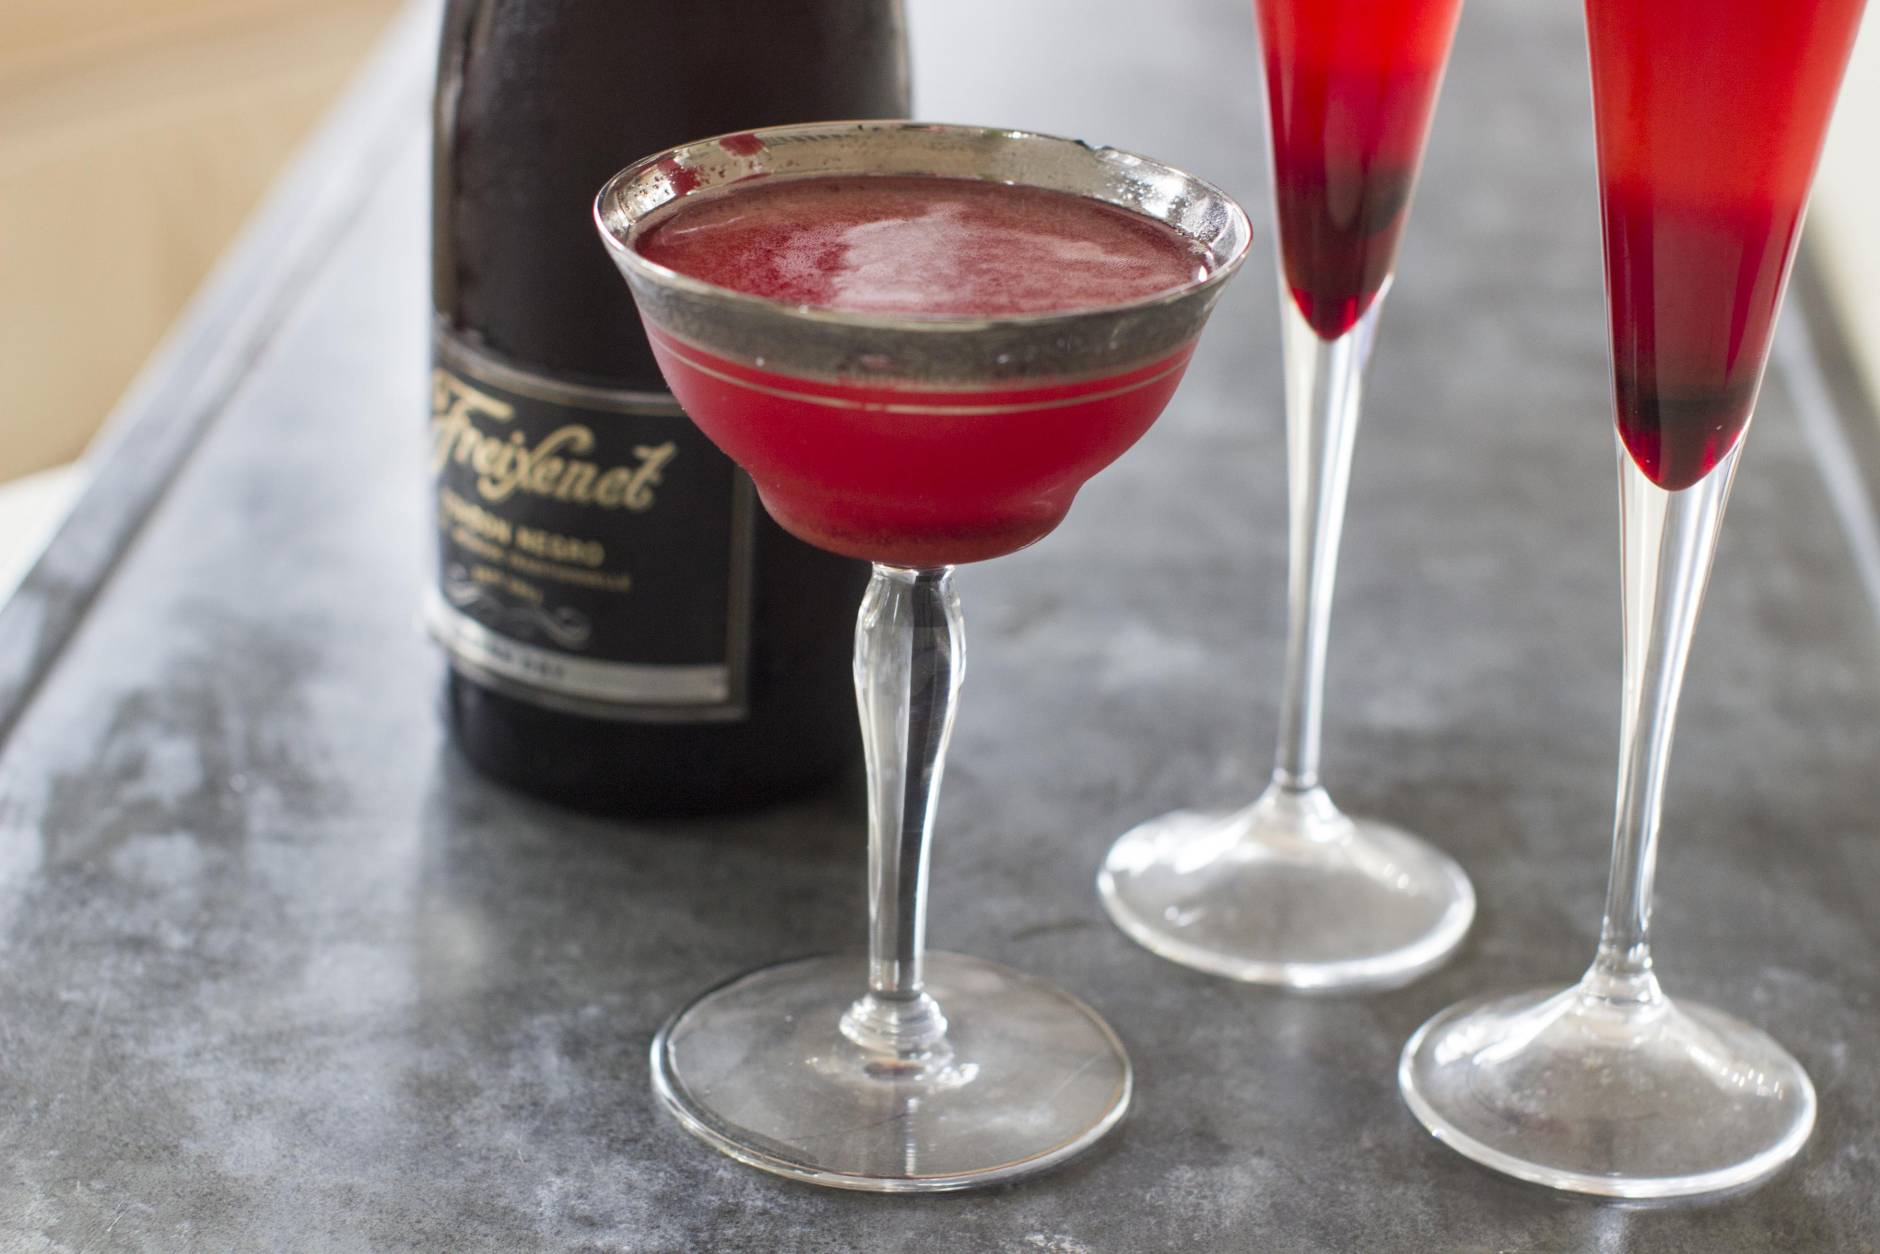 This Nov. 10, 2014 photo shows a ruby spiced bubbles cocktail in Concord, N.H. The ruby spice bubbles offers a fresh and refreshing way to enjoy sparkling wine. (AP Photo/Matthew Mead)